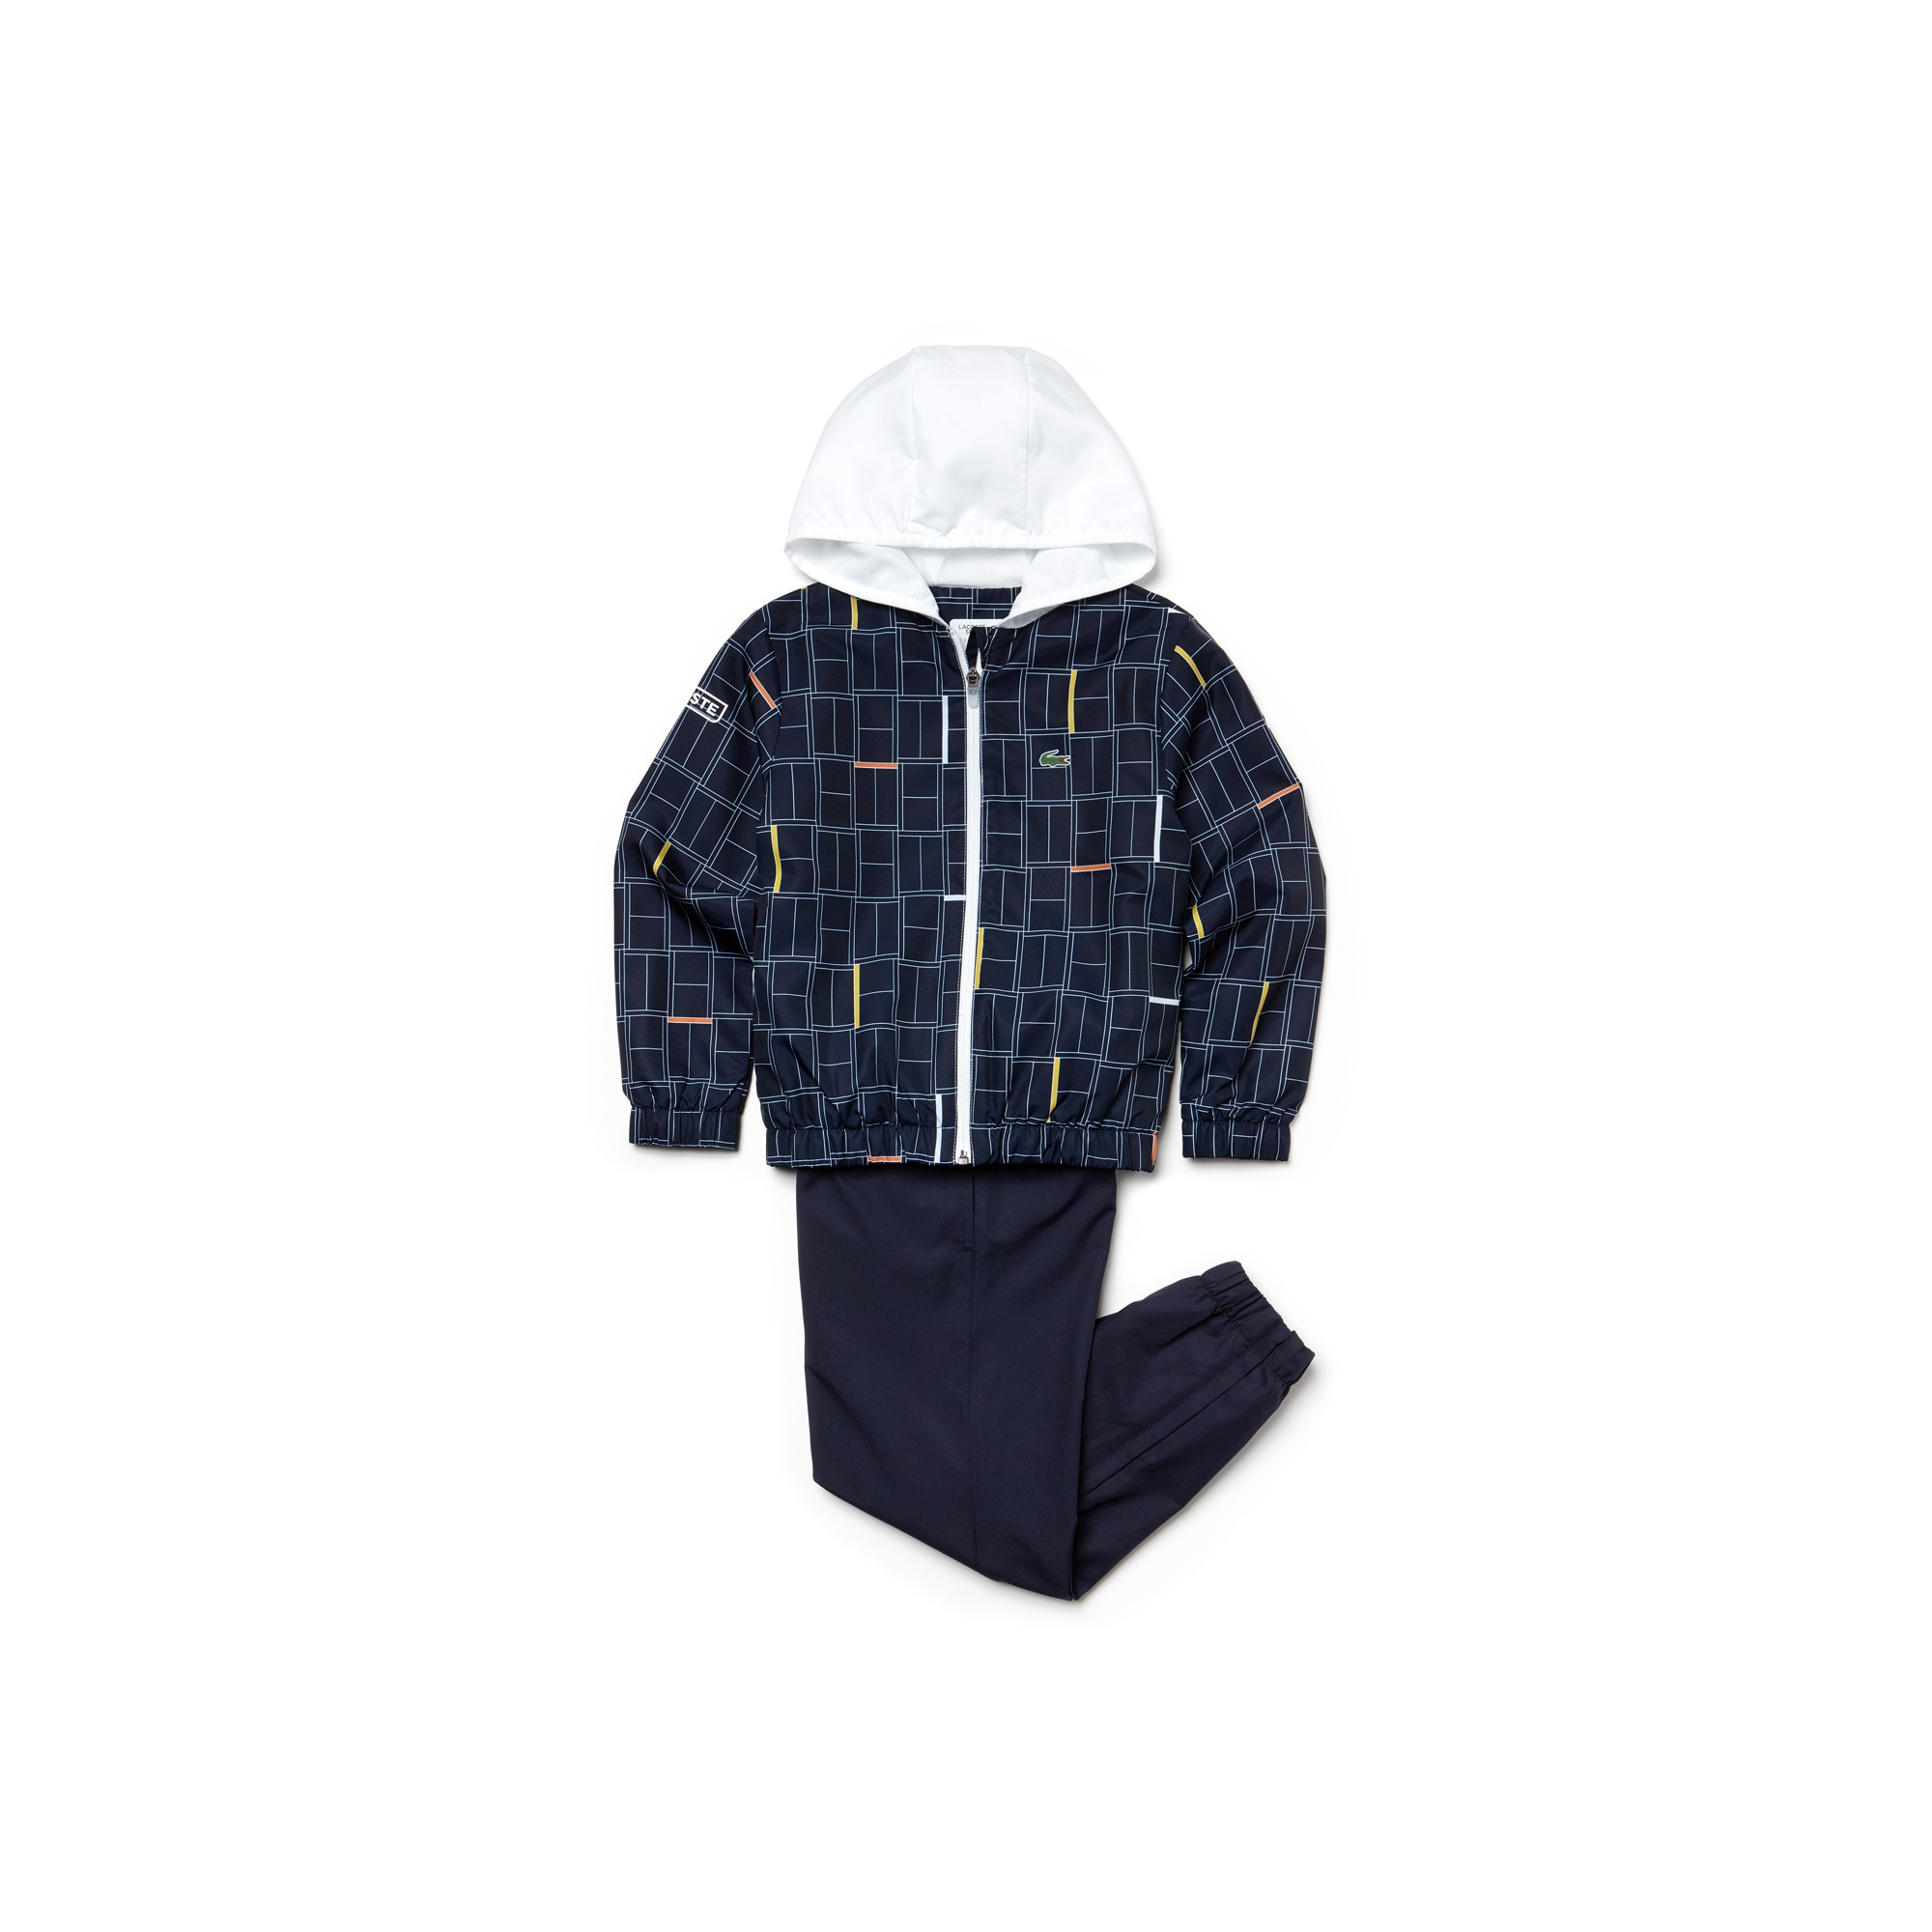 Boys' LACOSTE SPORT NOVAK DJOKOVIC COLLECTION Print Taffeta Tracksuit